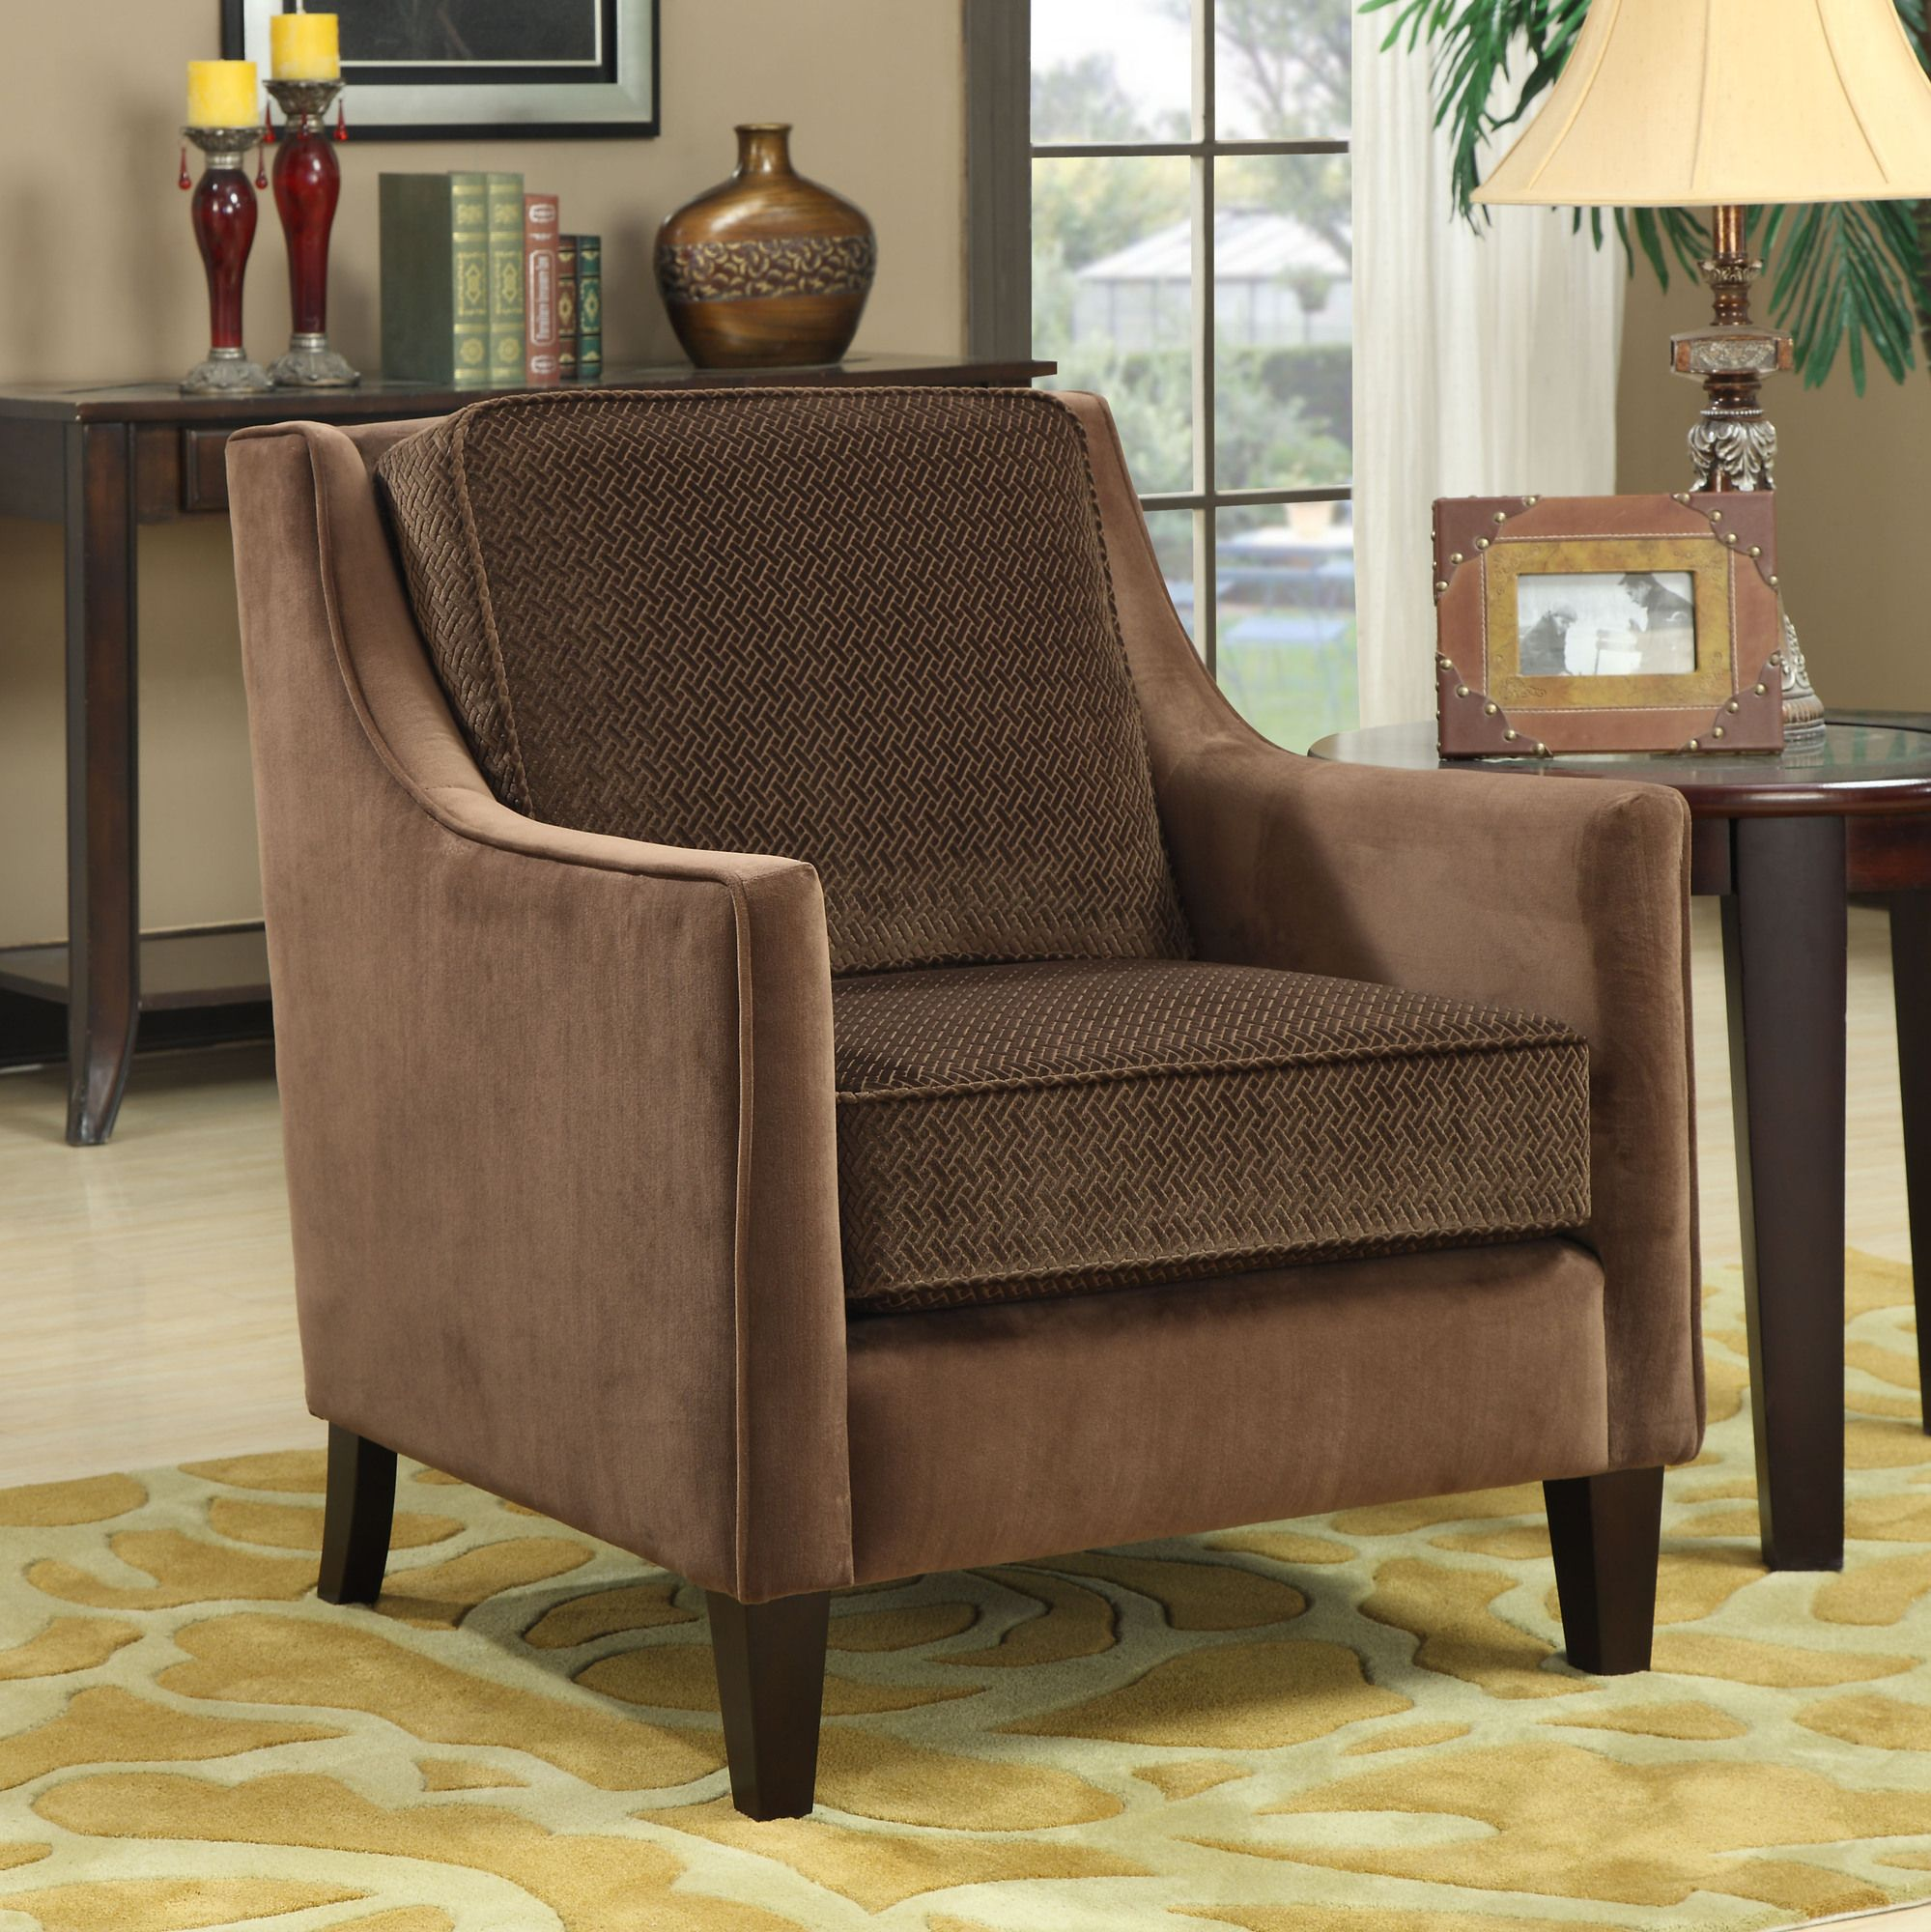 Wildon Home Contrasting Accent Chair In Cappuccino